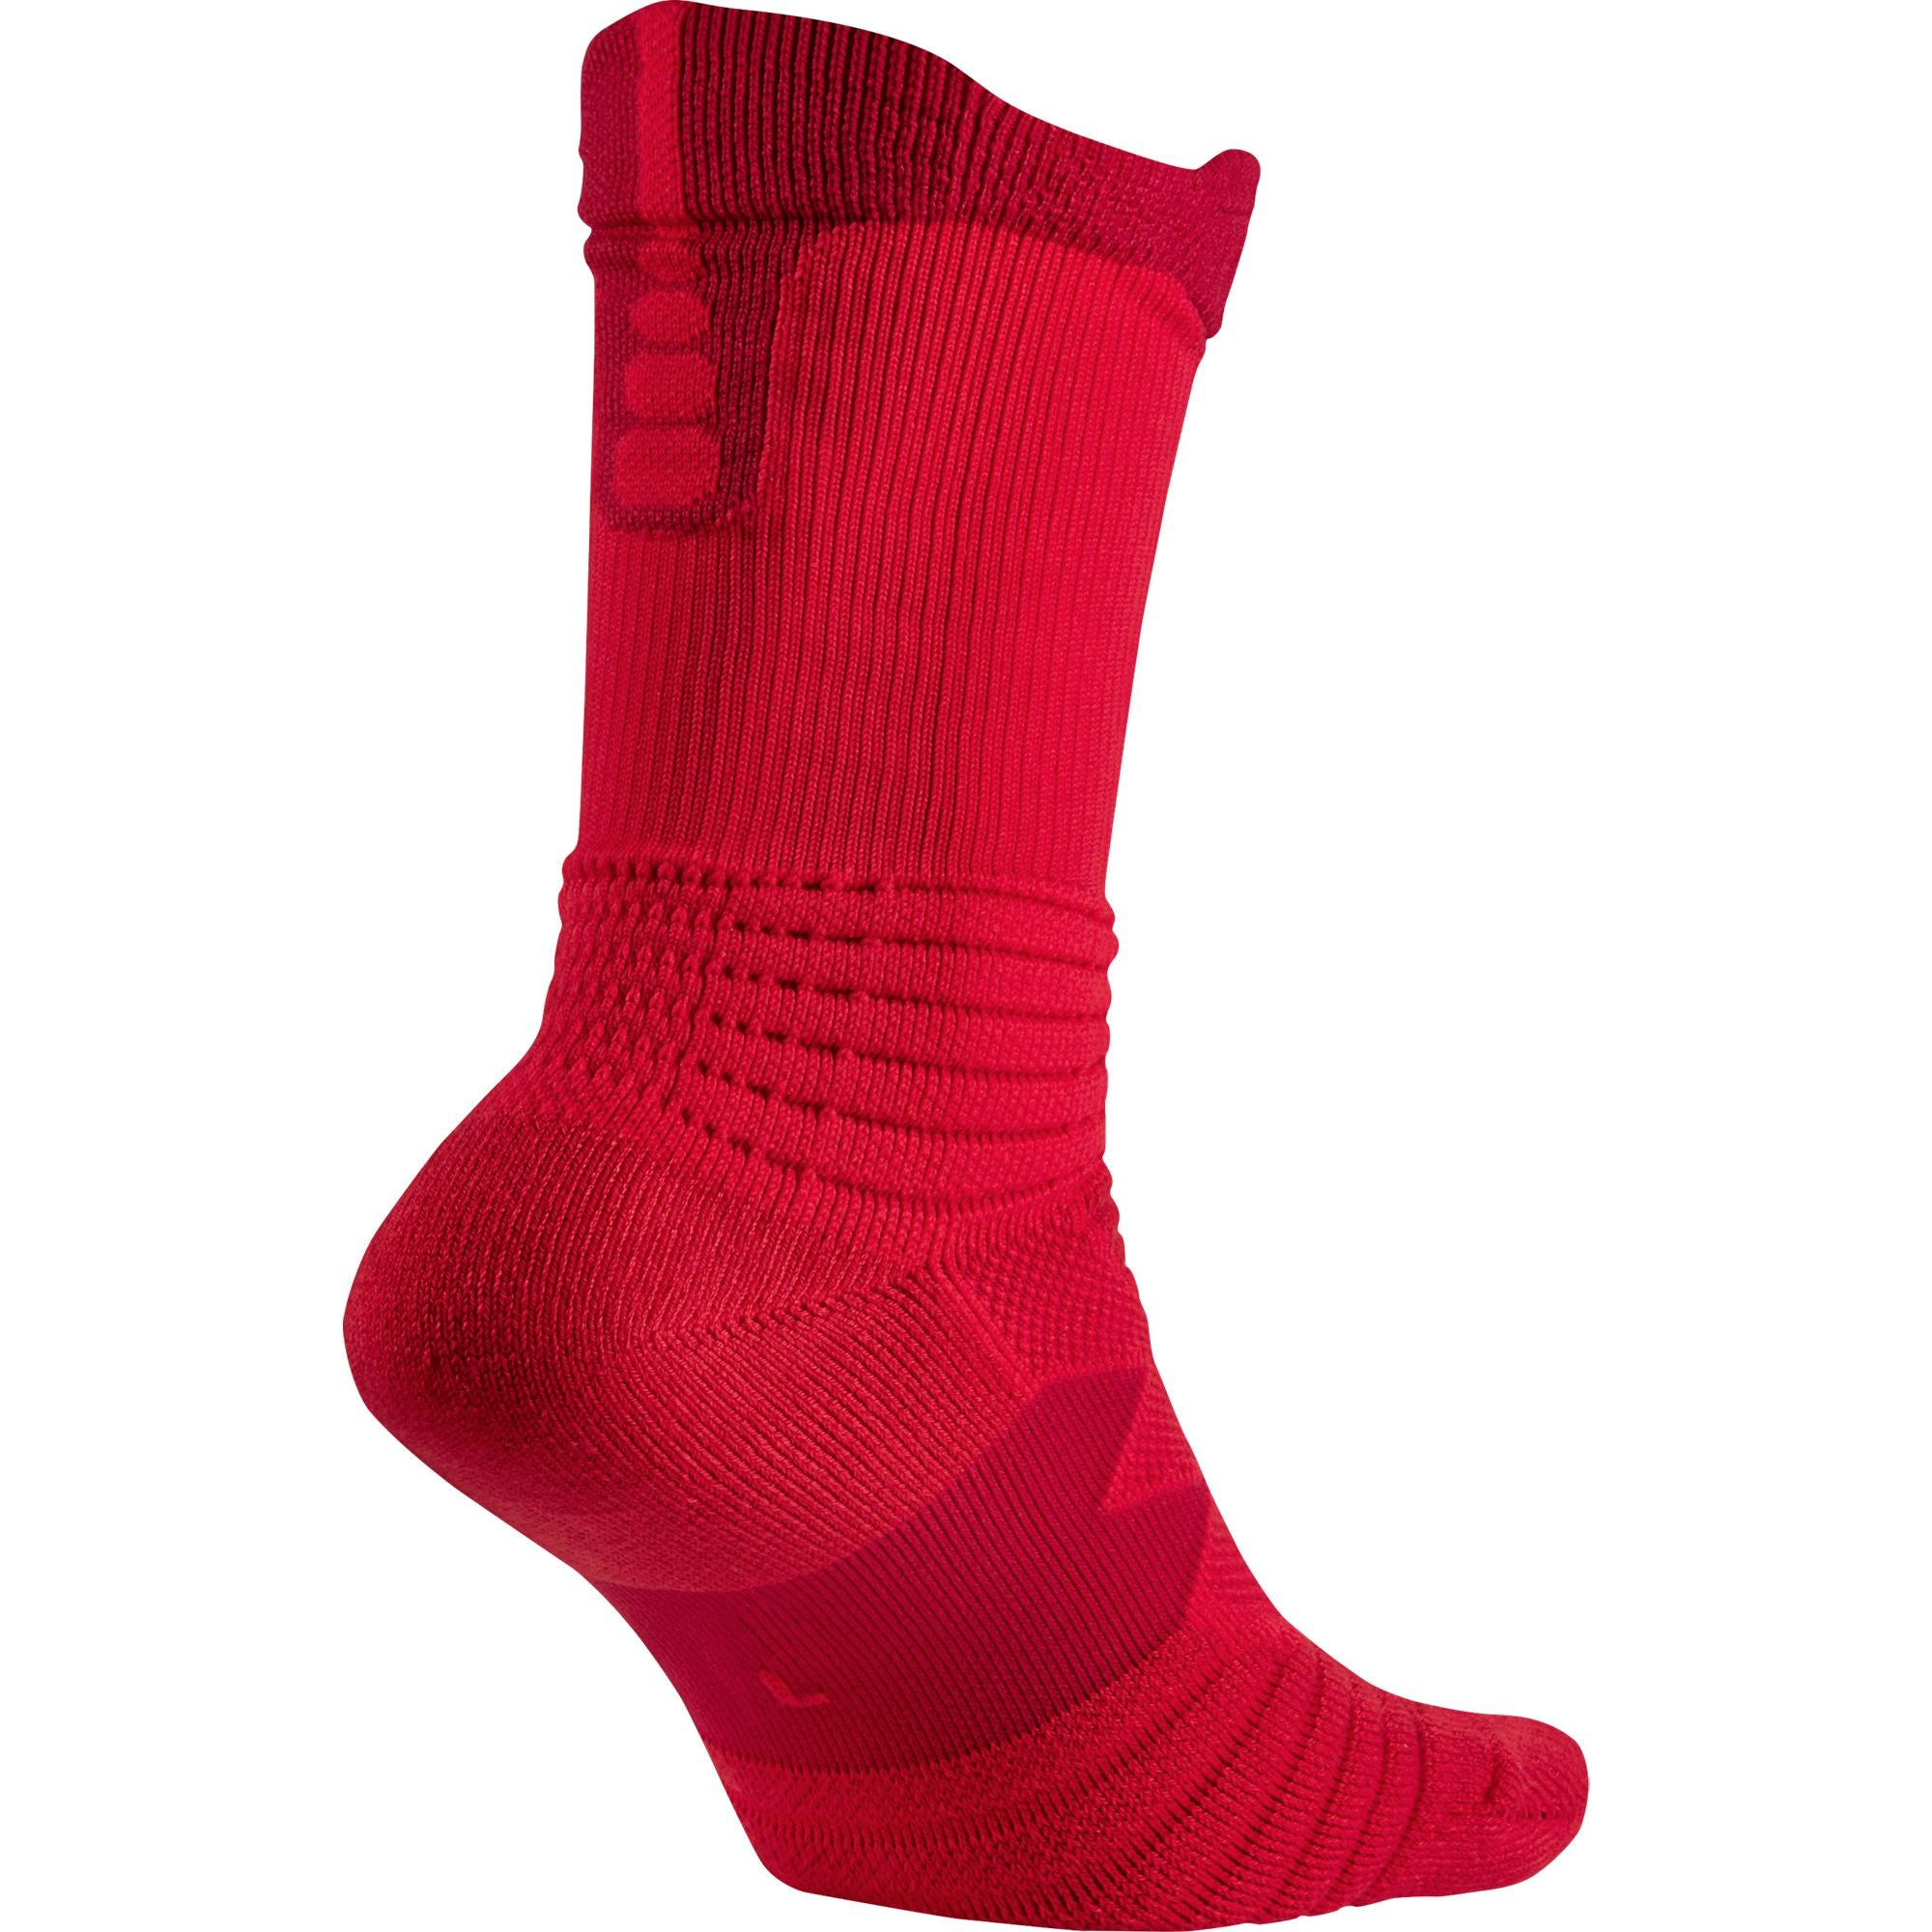 Nike Basketball Elite Versatility Basketball Crew Socks - University Red/Gym Red